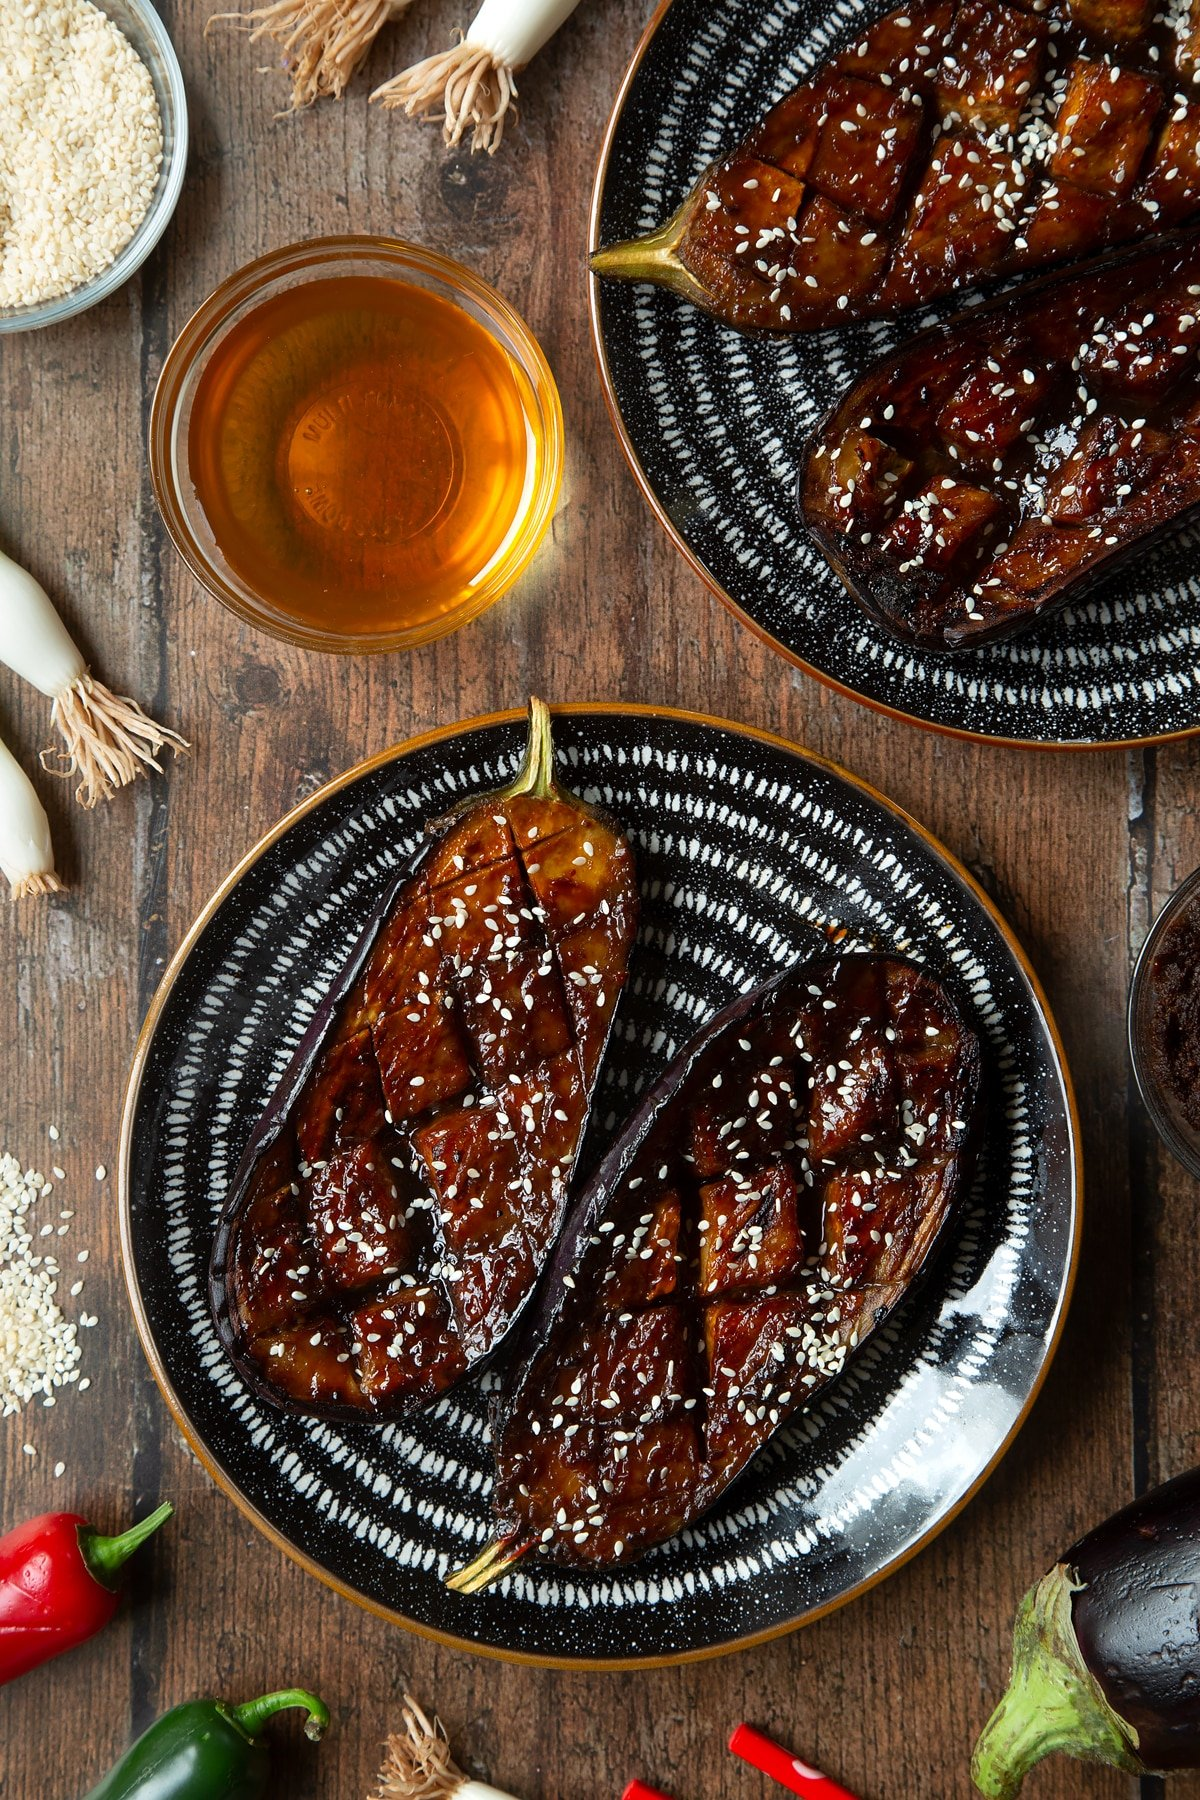 Aubergine halves with a miso glaze and sesame seeds on a plate. Ingredients to make miso aubergine surround the tray.